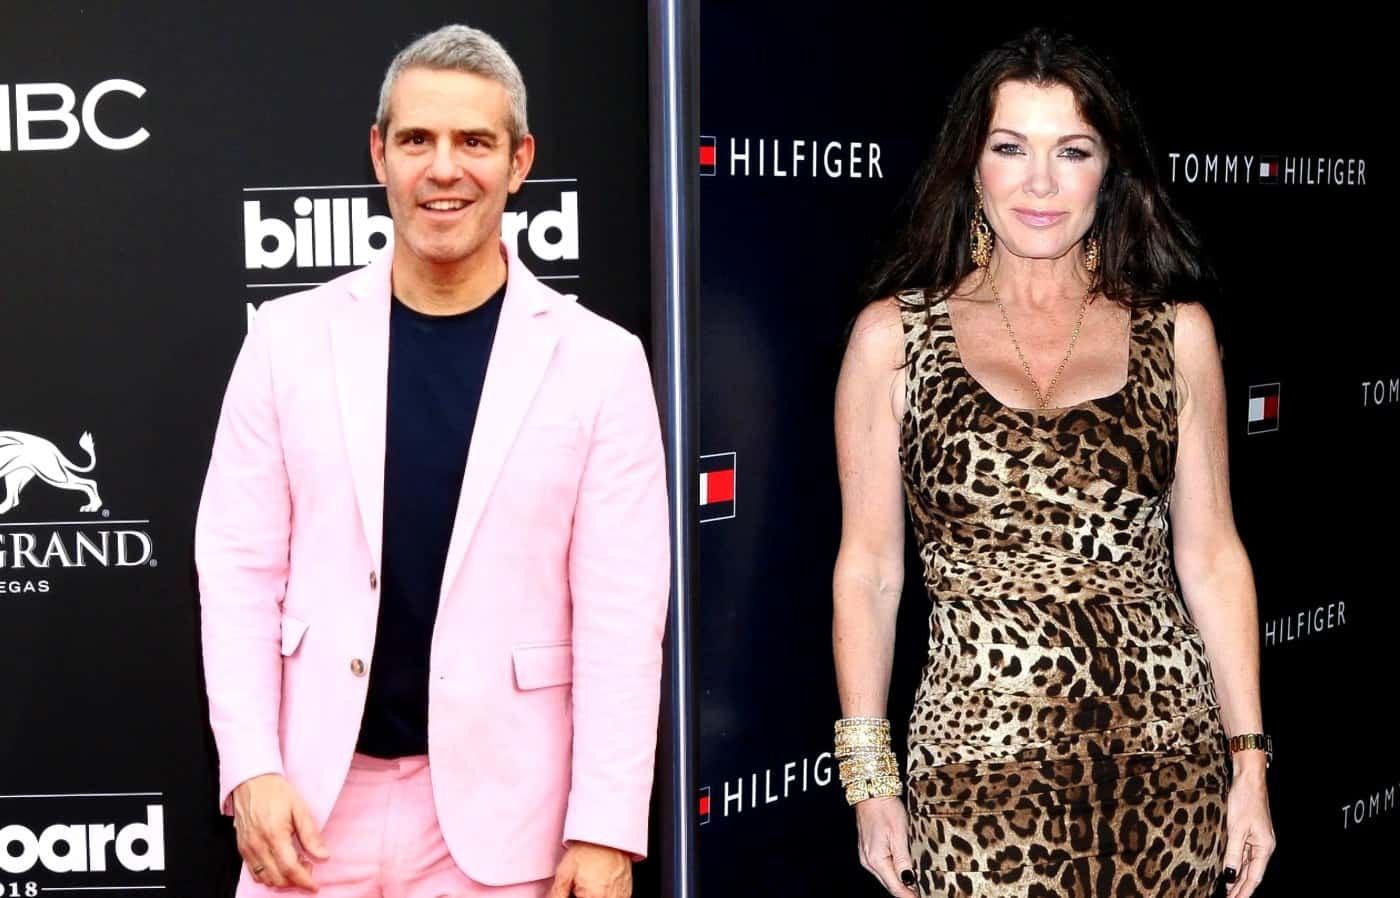 Andy Cohen Addresses if Lisa Vanderpump is Getting a Vanderpump Rules Spinoff for New Las Vegas Restaurant